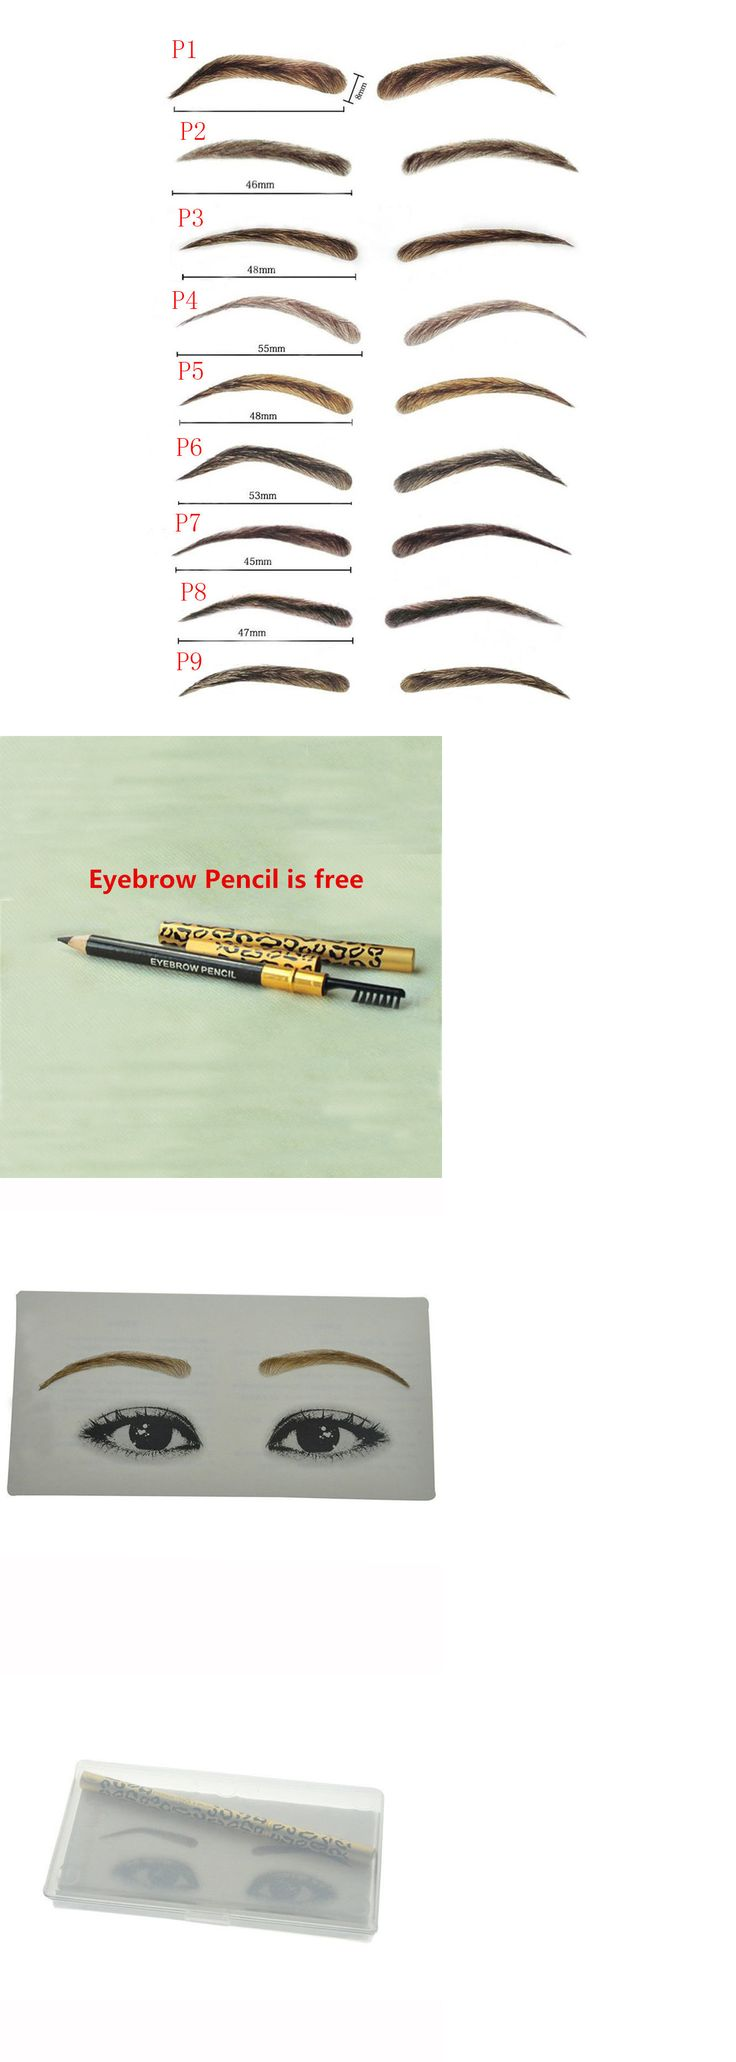 Eyebrow Liner and Definition: Bhd False Eyebrow Makeup Handmade 100% Natural Human Hair With Eyebrow Pencil BUY IT NOW ONLY: $39.87